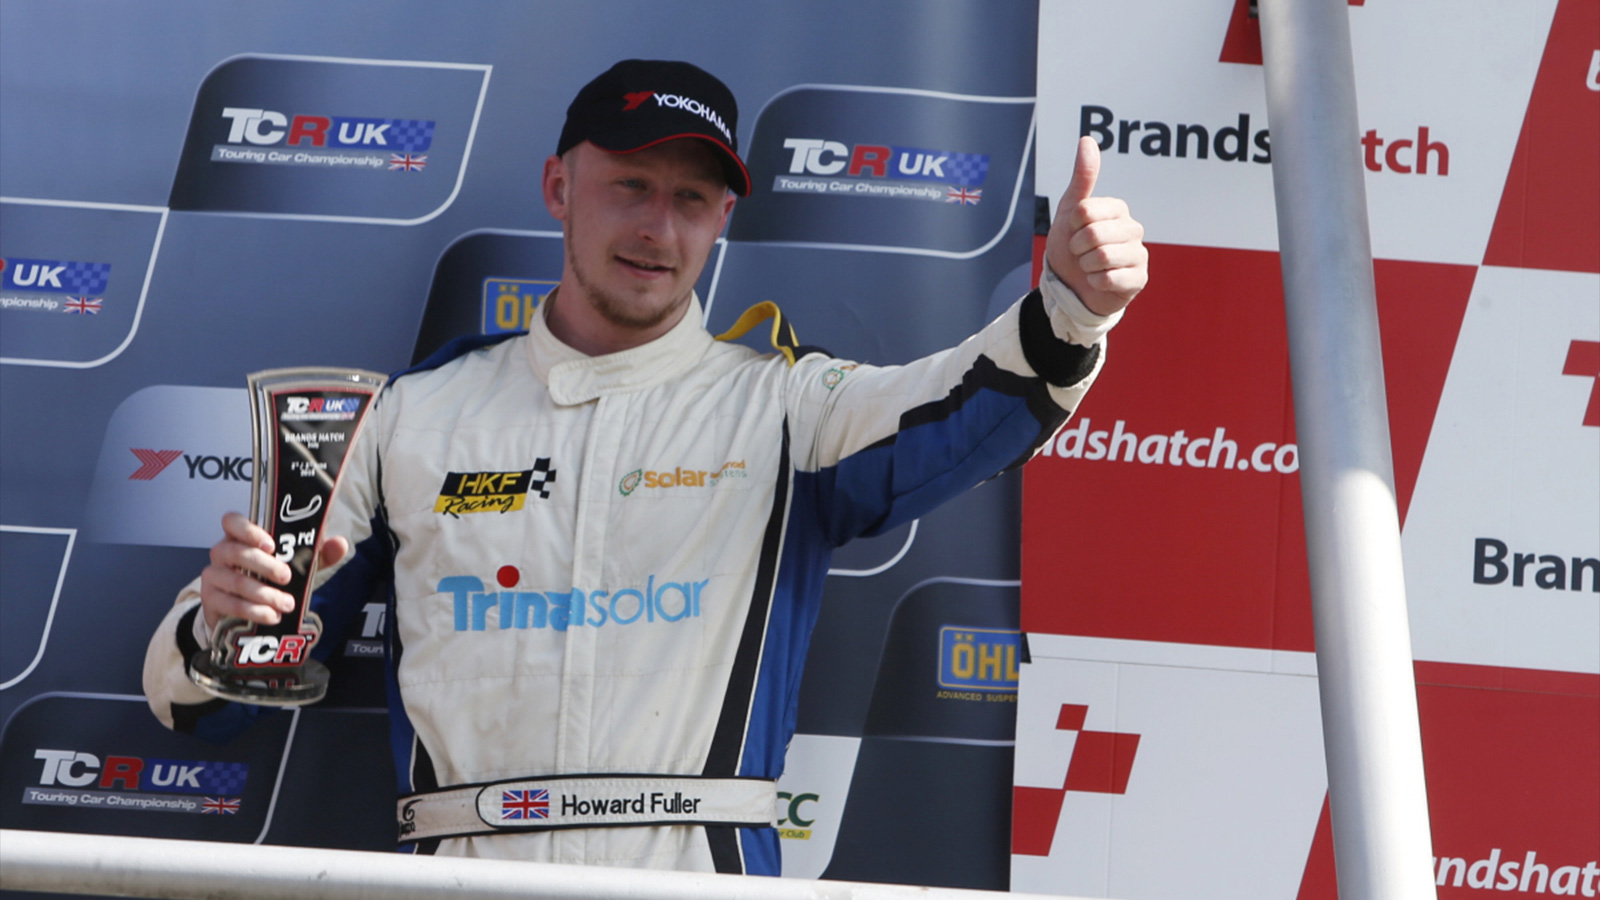 SWR Racer Fuller Stars at Brands Hatch with Maiden TCR UK Podium